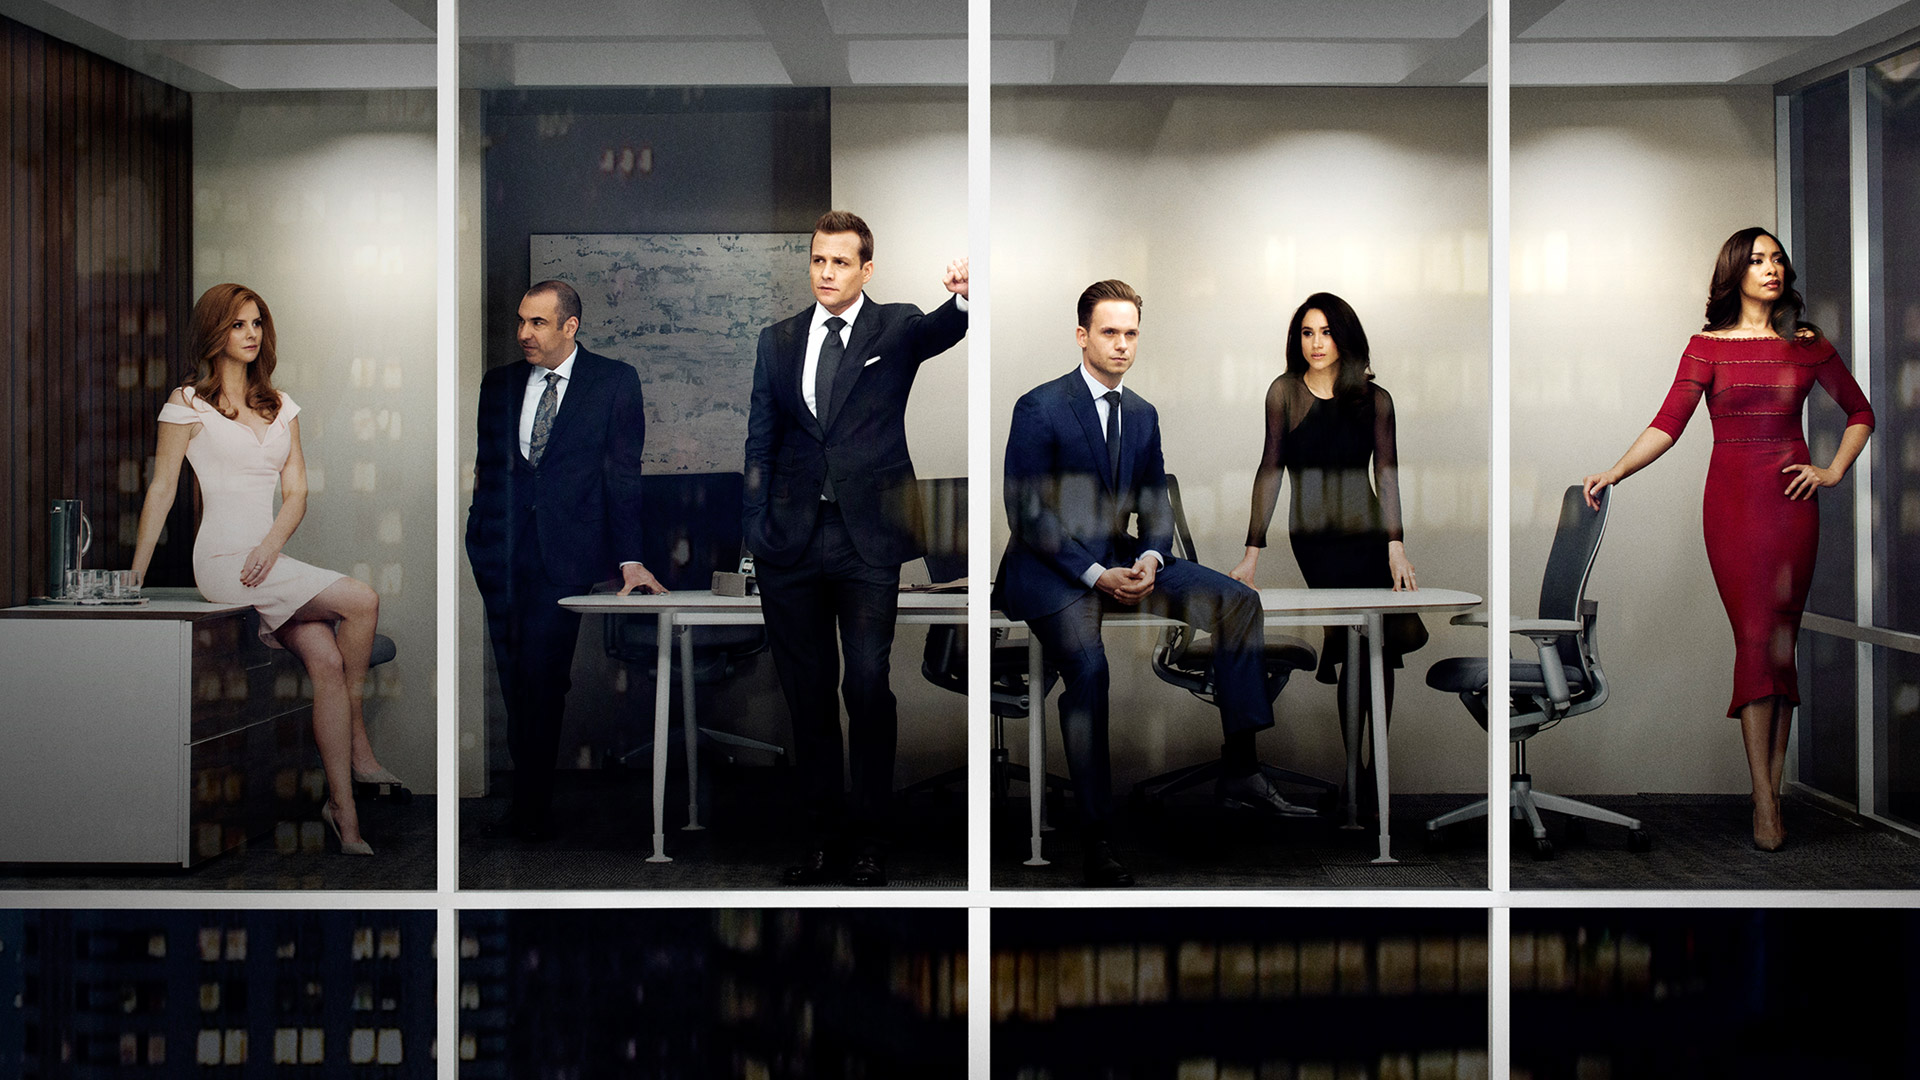 suits wallpapers pictures images